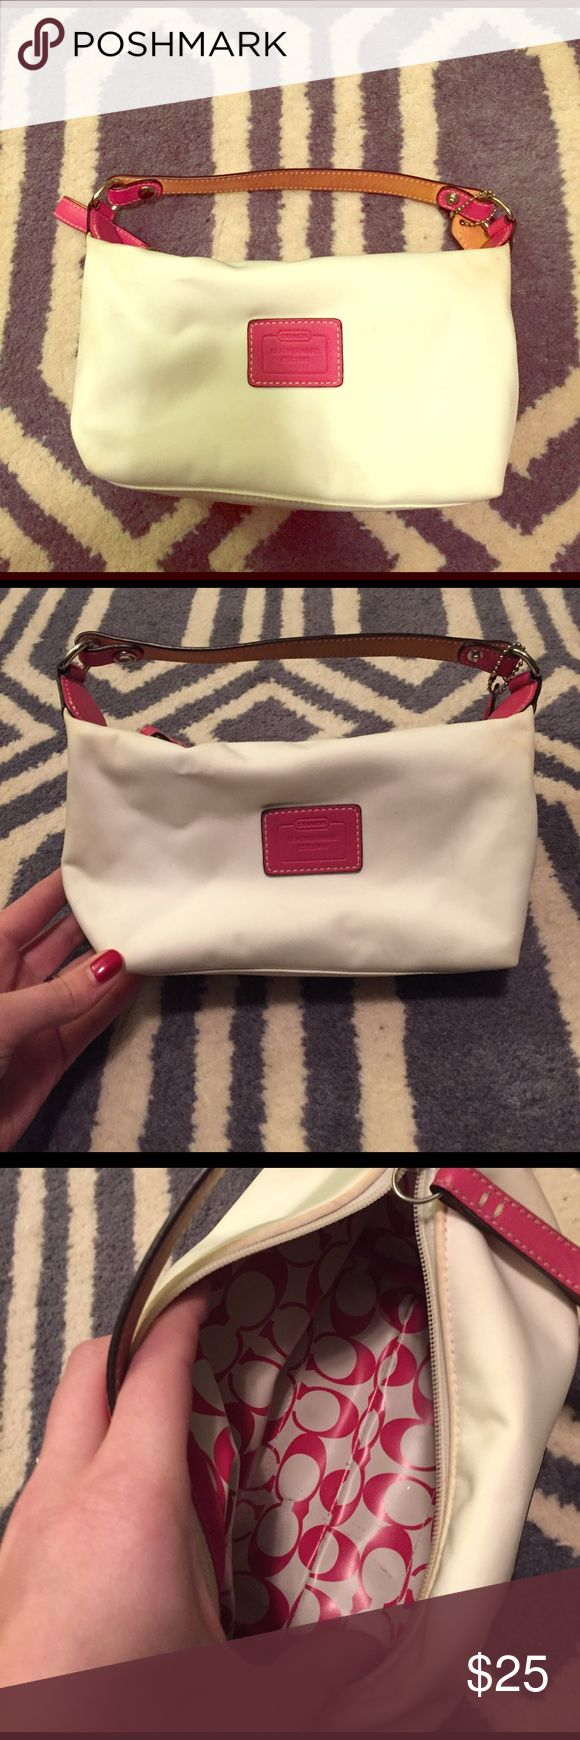 Authentic Coach purse, canvas material Authentic Coach purse. Canvas material. Outside has some staining (see pics)  - may be able to be cleaned. Super cute and fun white and pink color with brown detail on side. Coach Bags